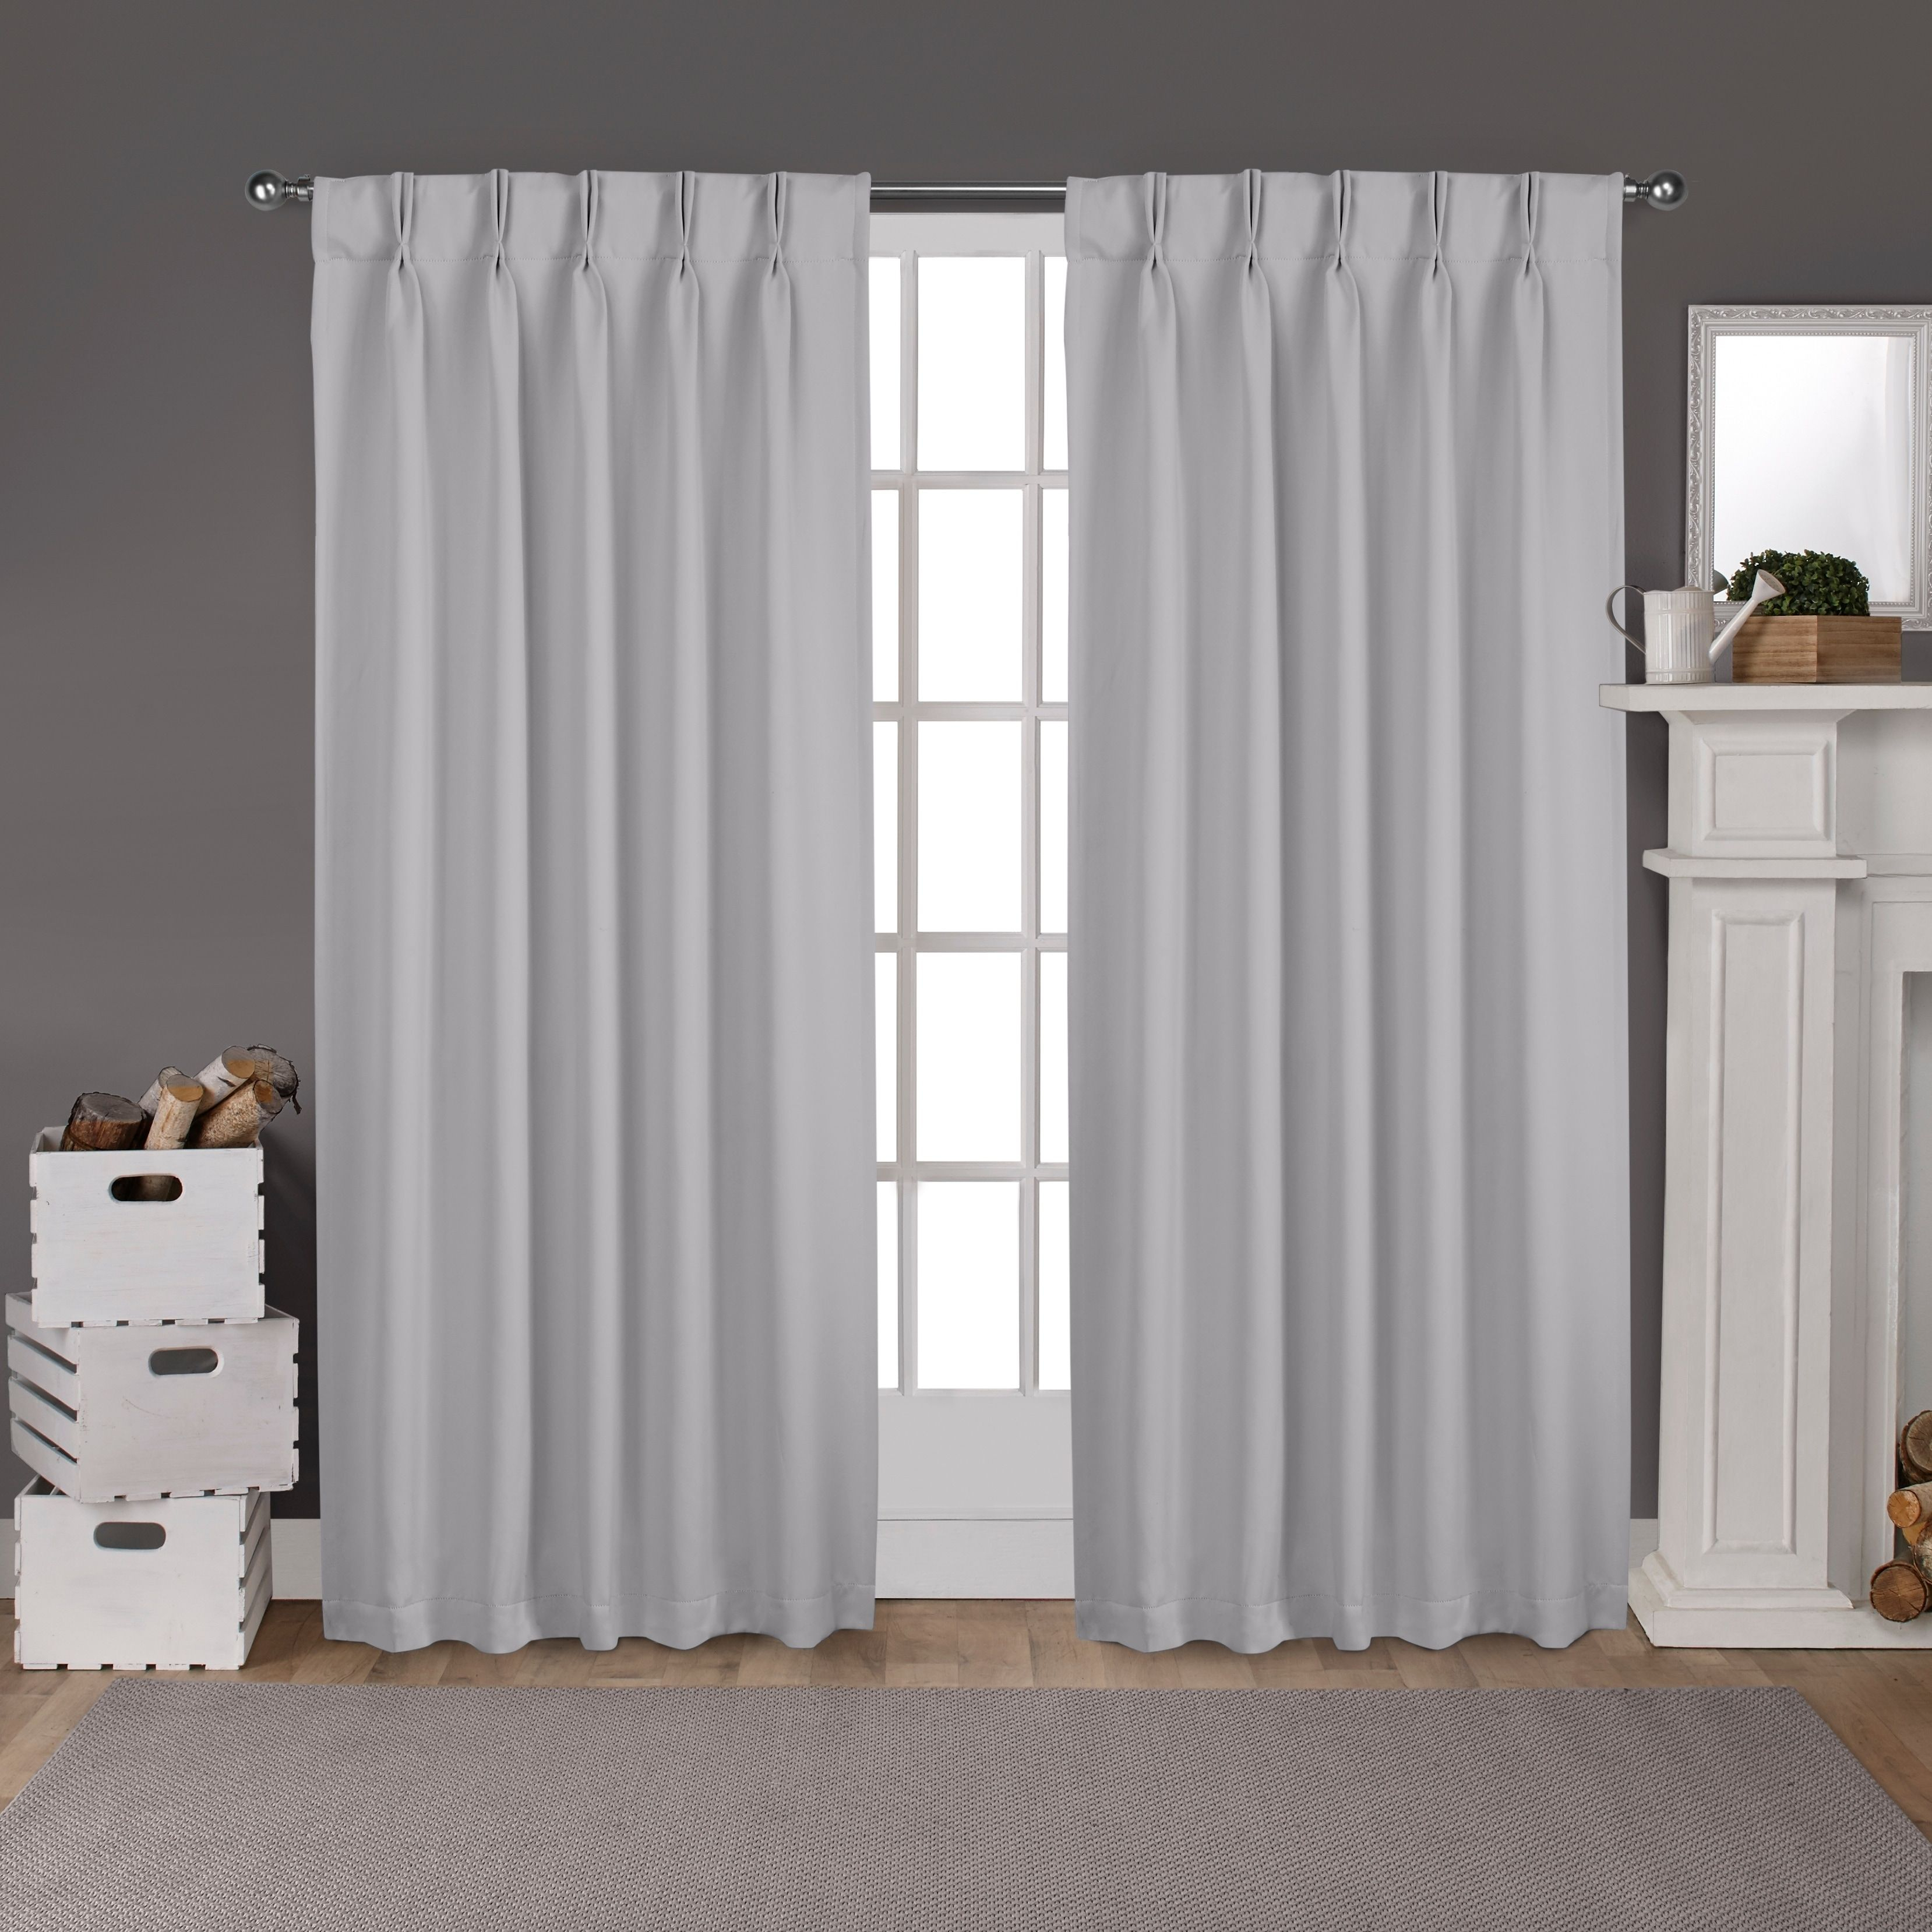 Ati Home Sateen Woven Blackout Curtain Panel Pair With Pinch For Sateen Woven Blackout Curtain Panel Pairs With Pinch Pleat Top (View 7 of 20)